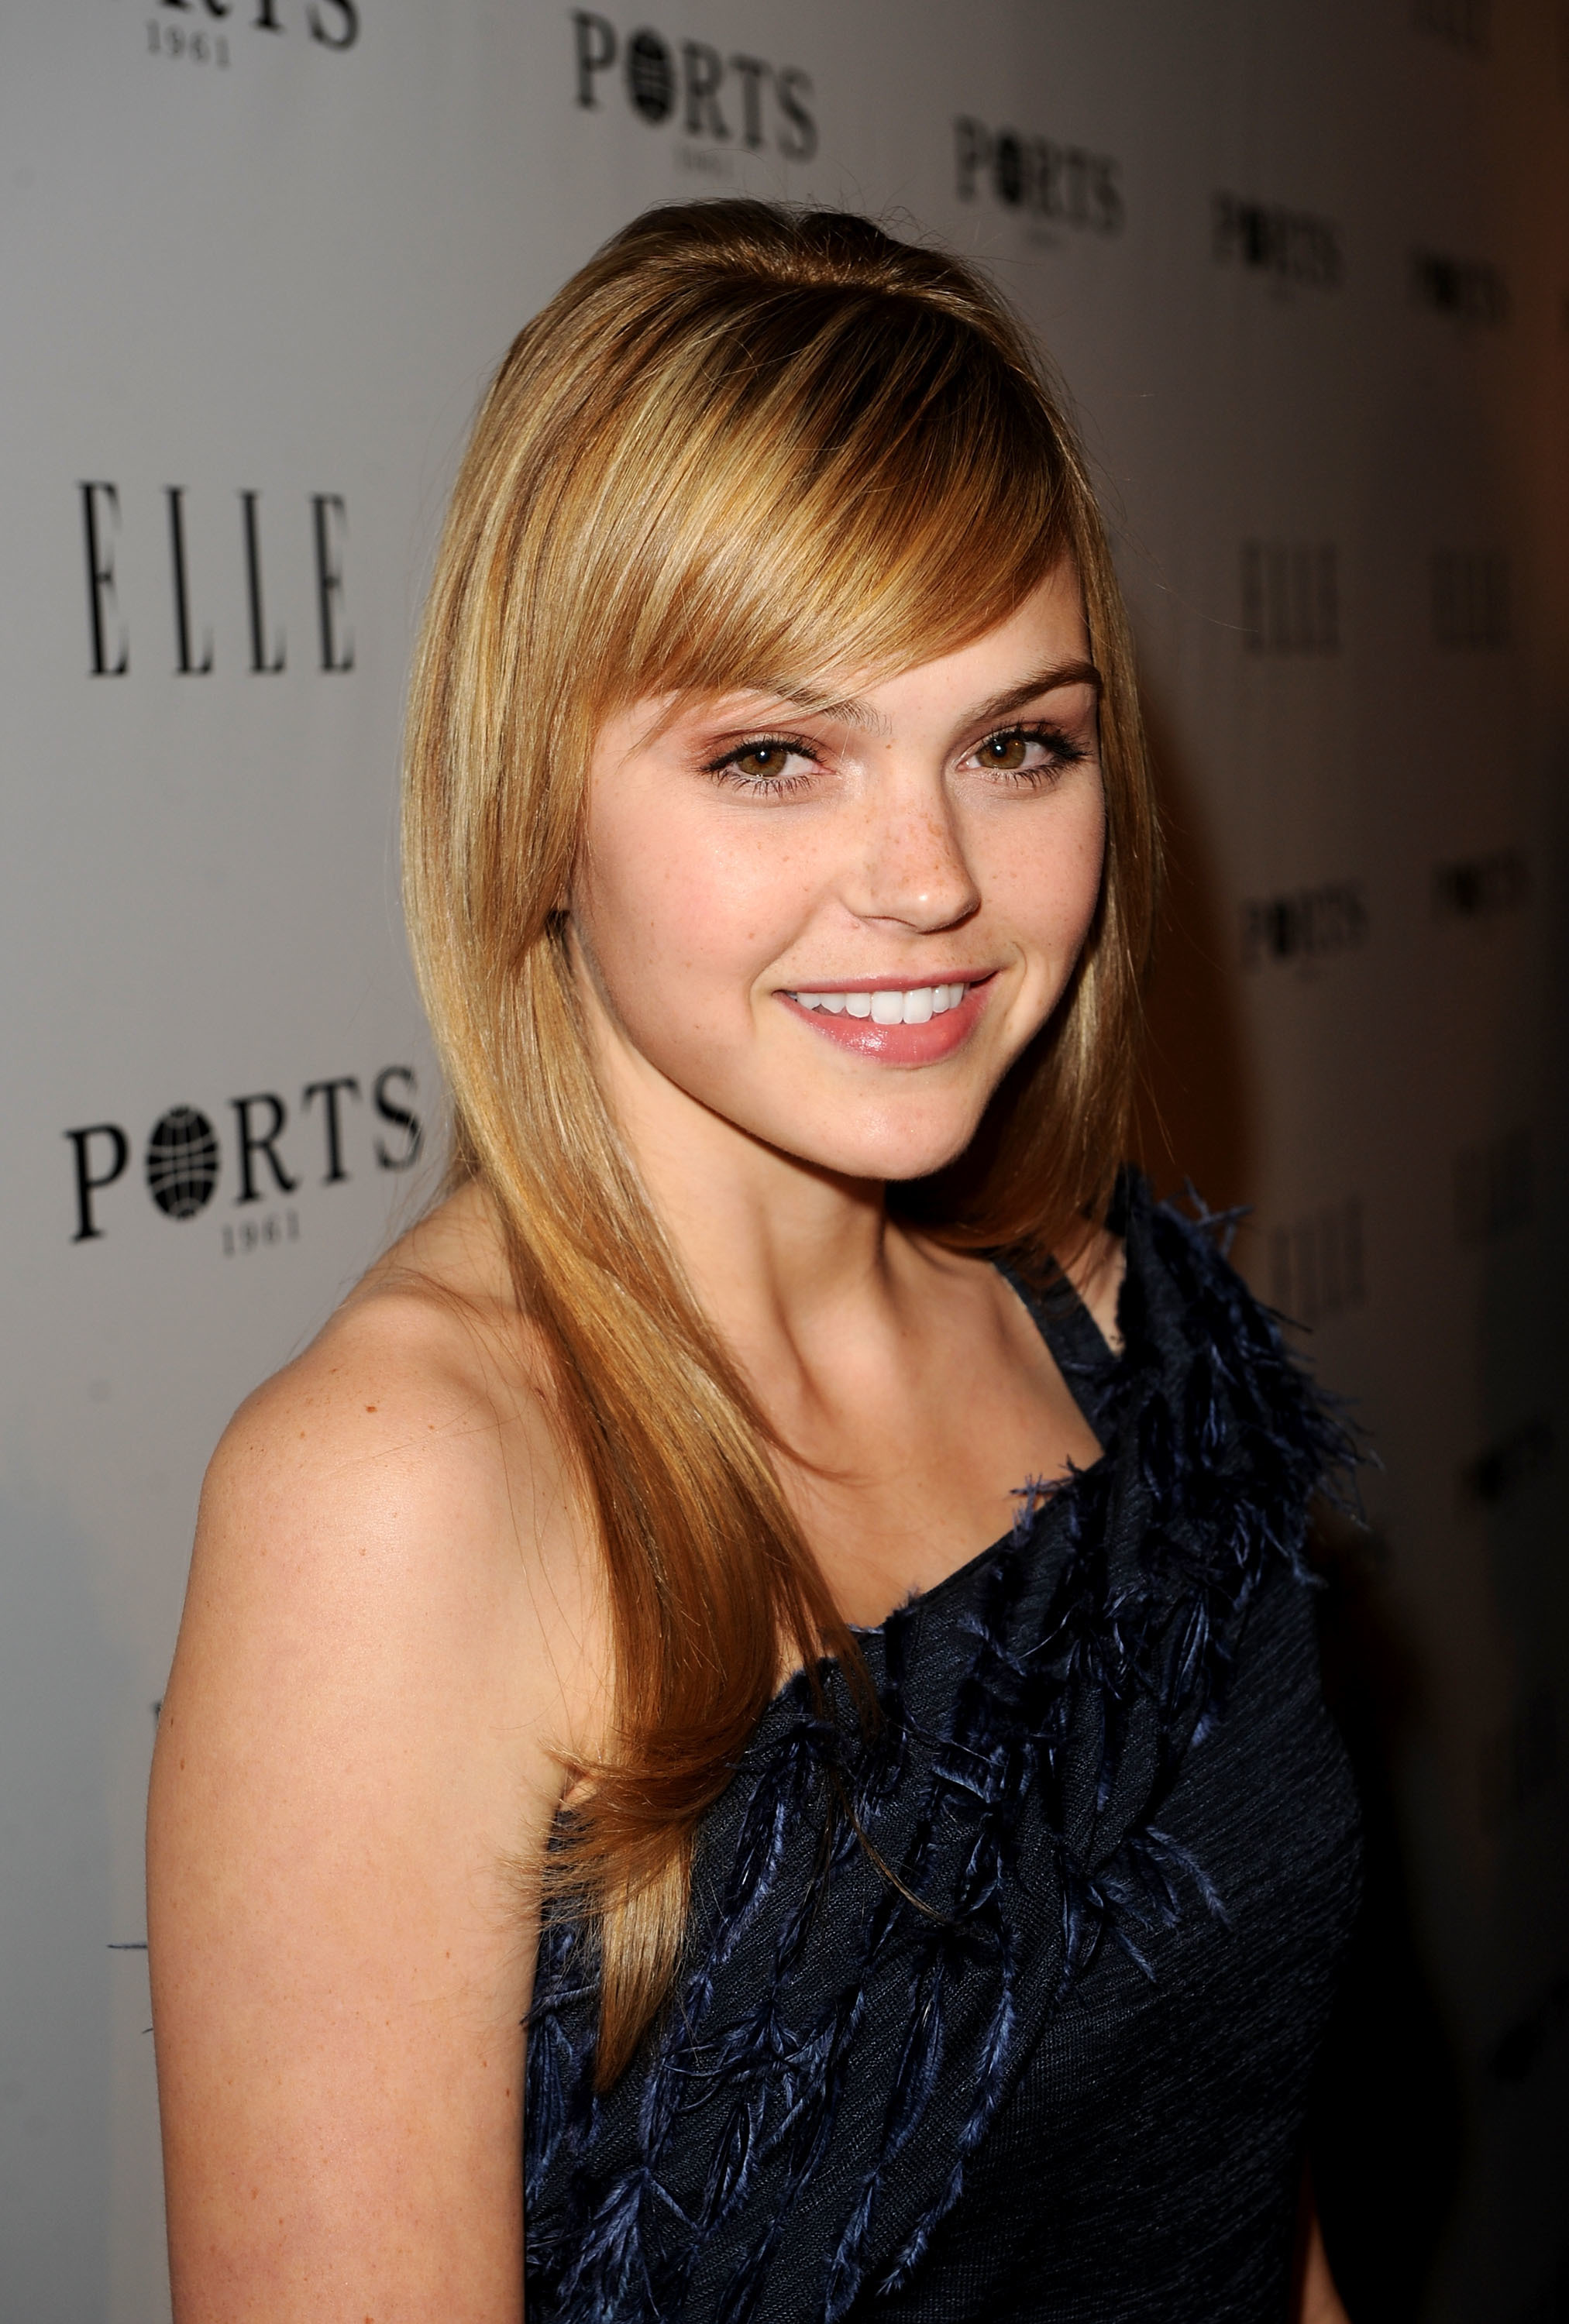 blondes woman aimee teegarden HD Wallpaper